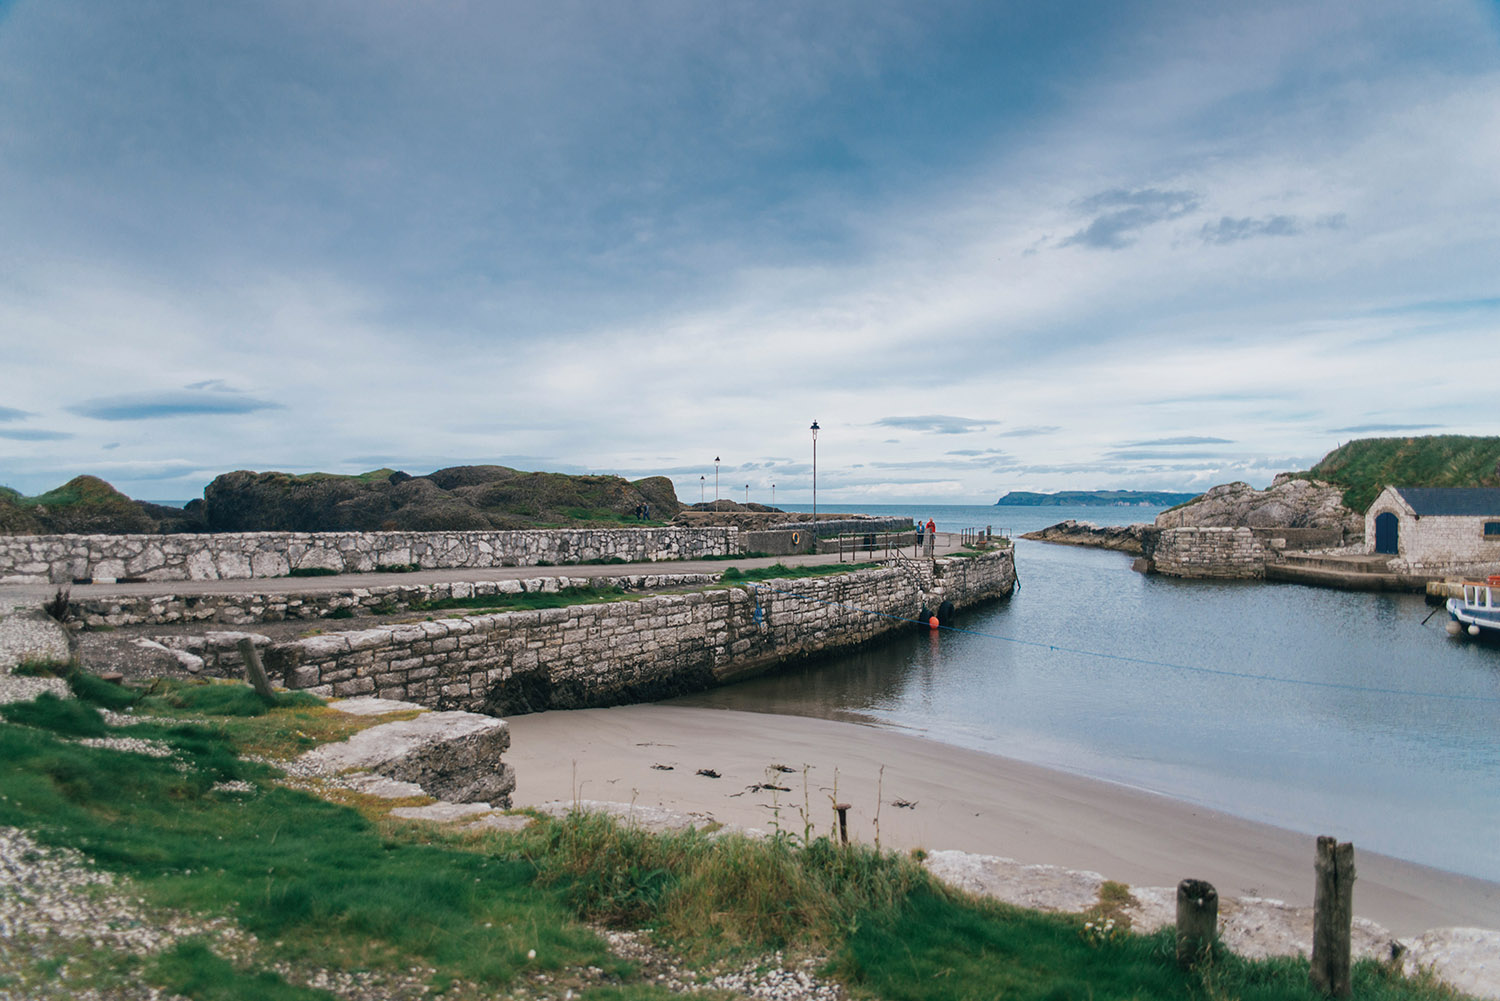 Ballintoy Harbour (Lordsport) The port of Pyke in the Iron Islands